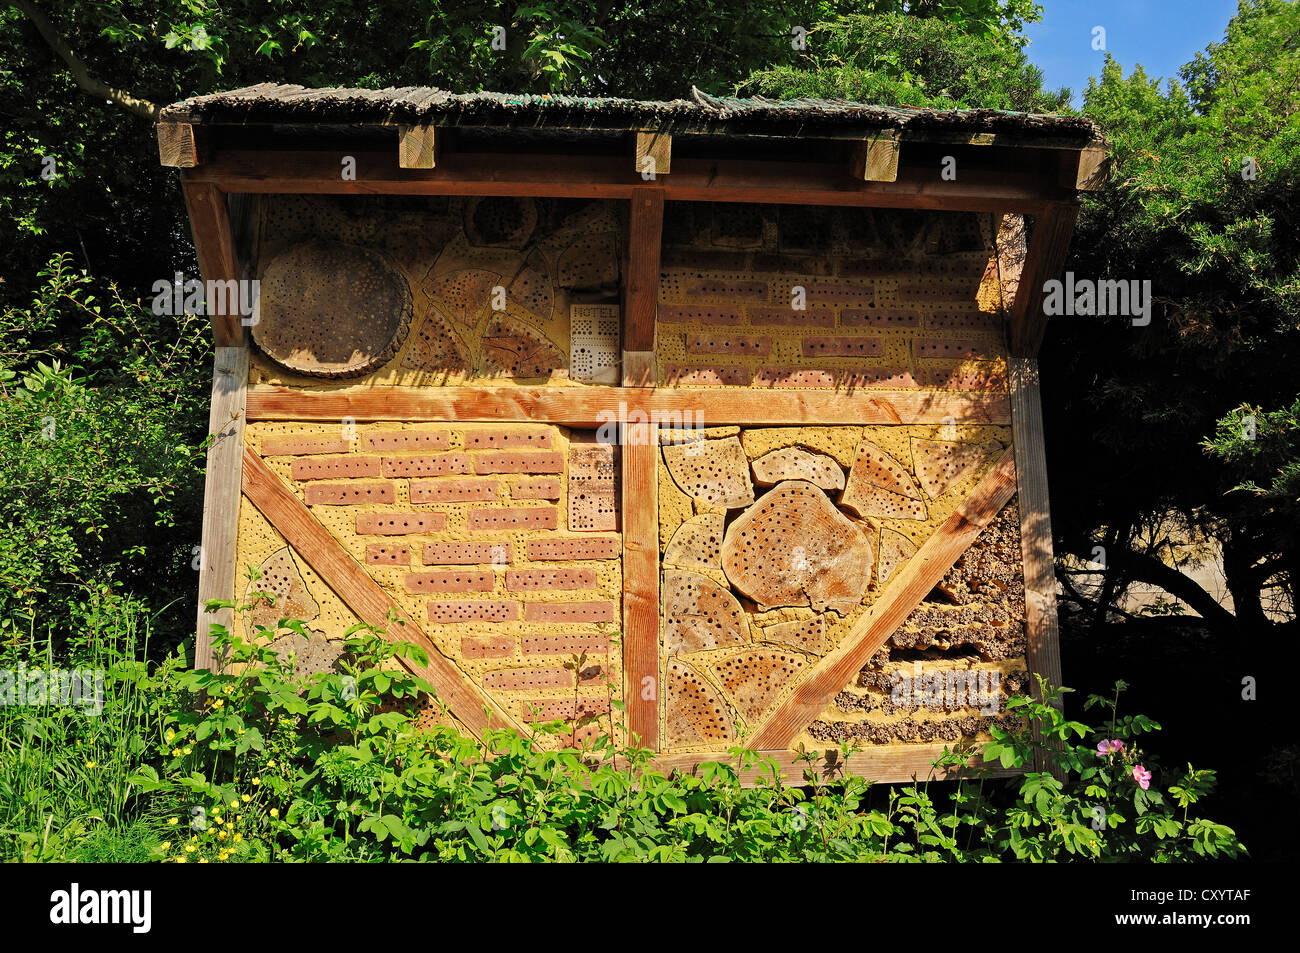 Nesting aid for wild bees and other insects, beehive, insect hotel, North Rhine-Westphalia - Stock Image